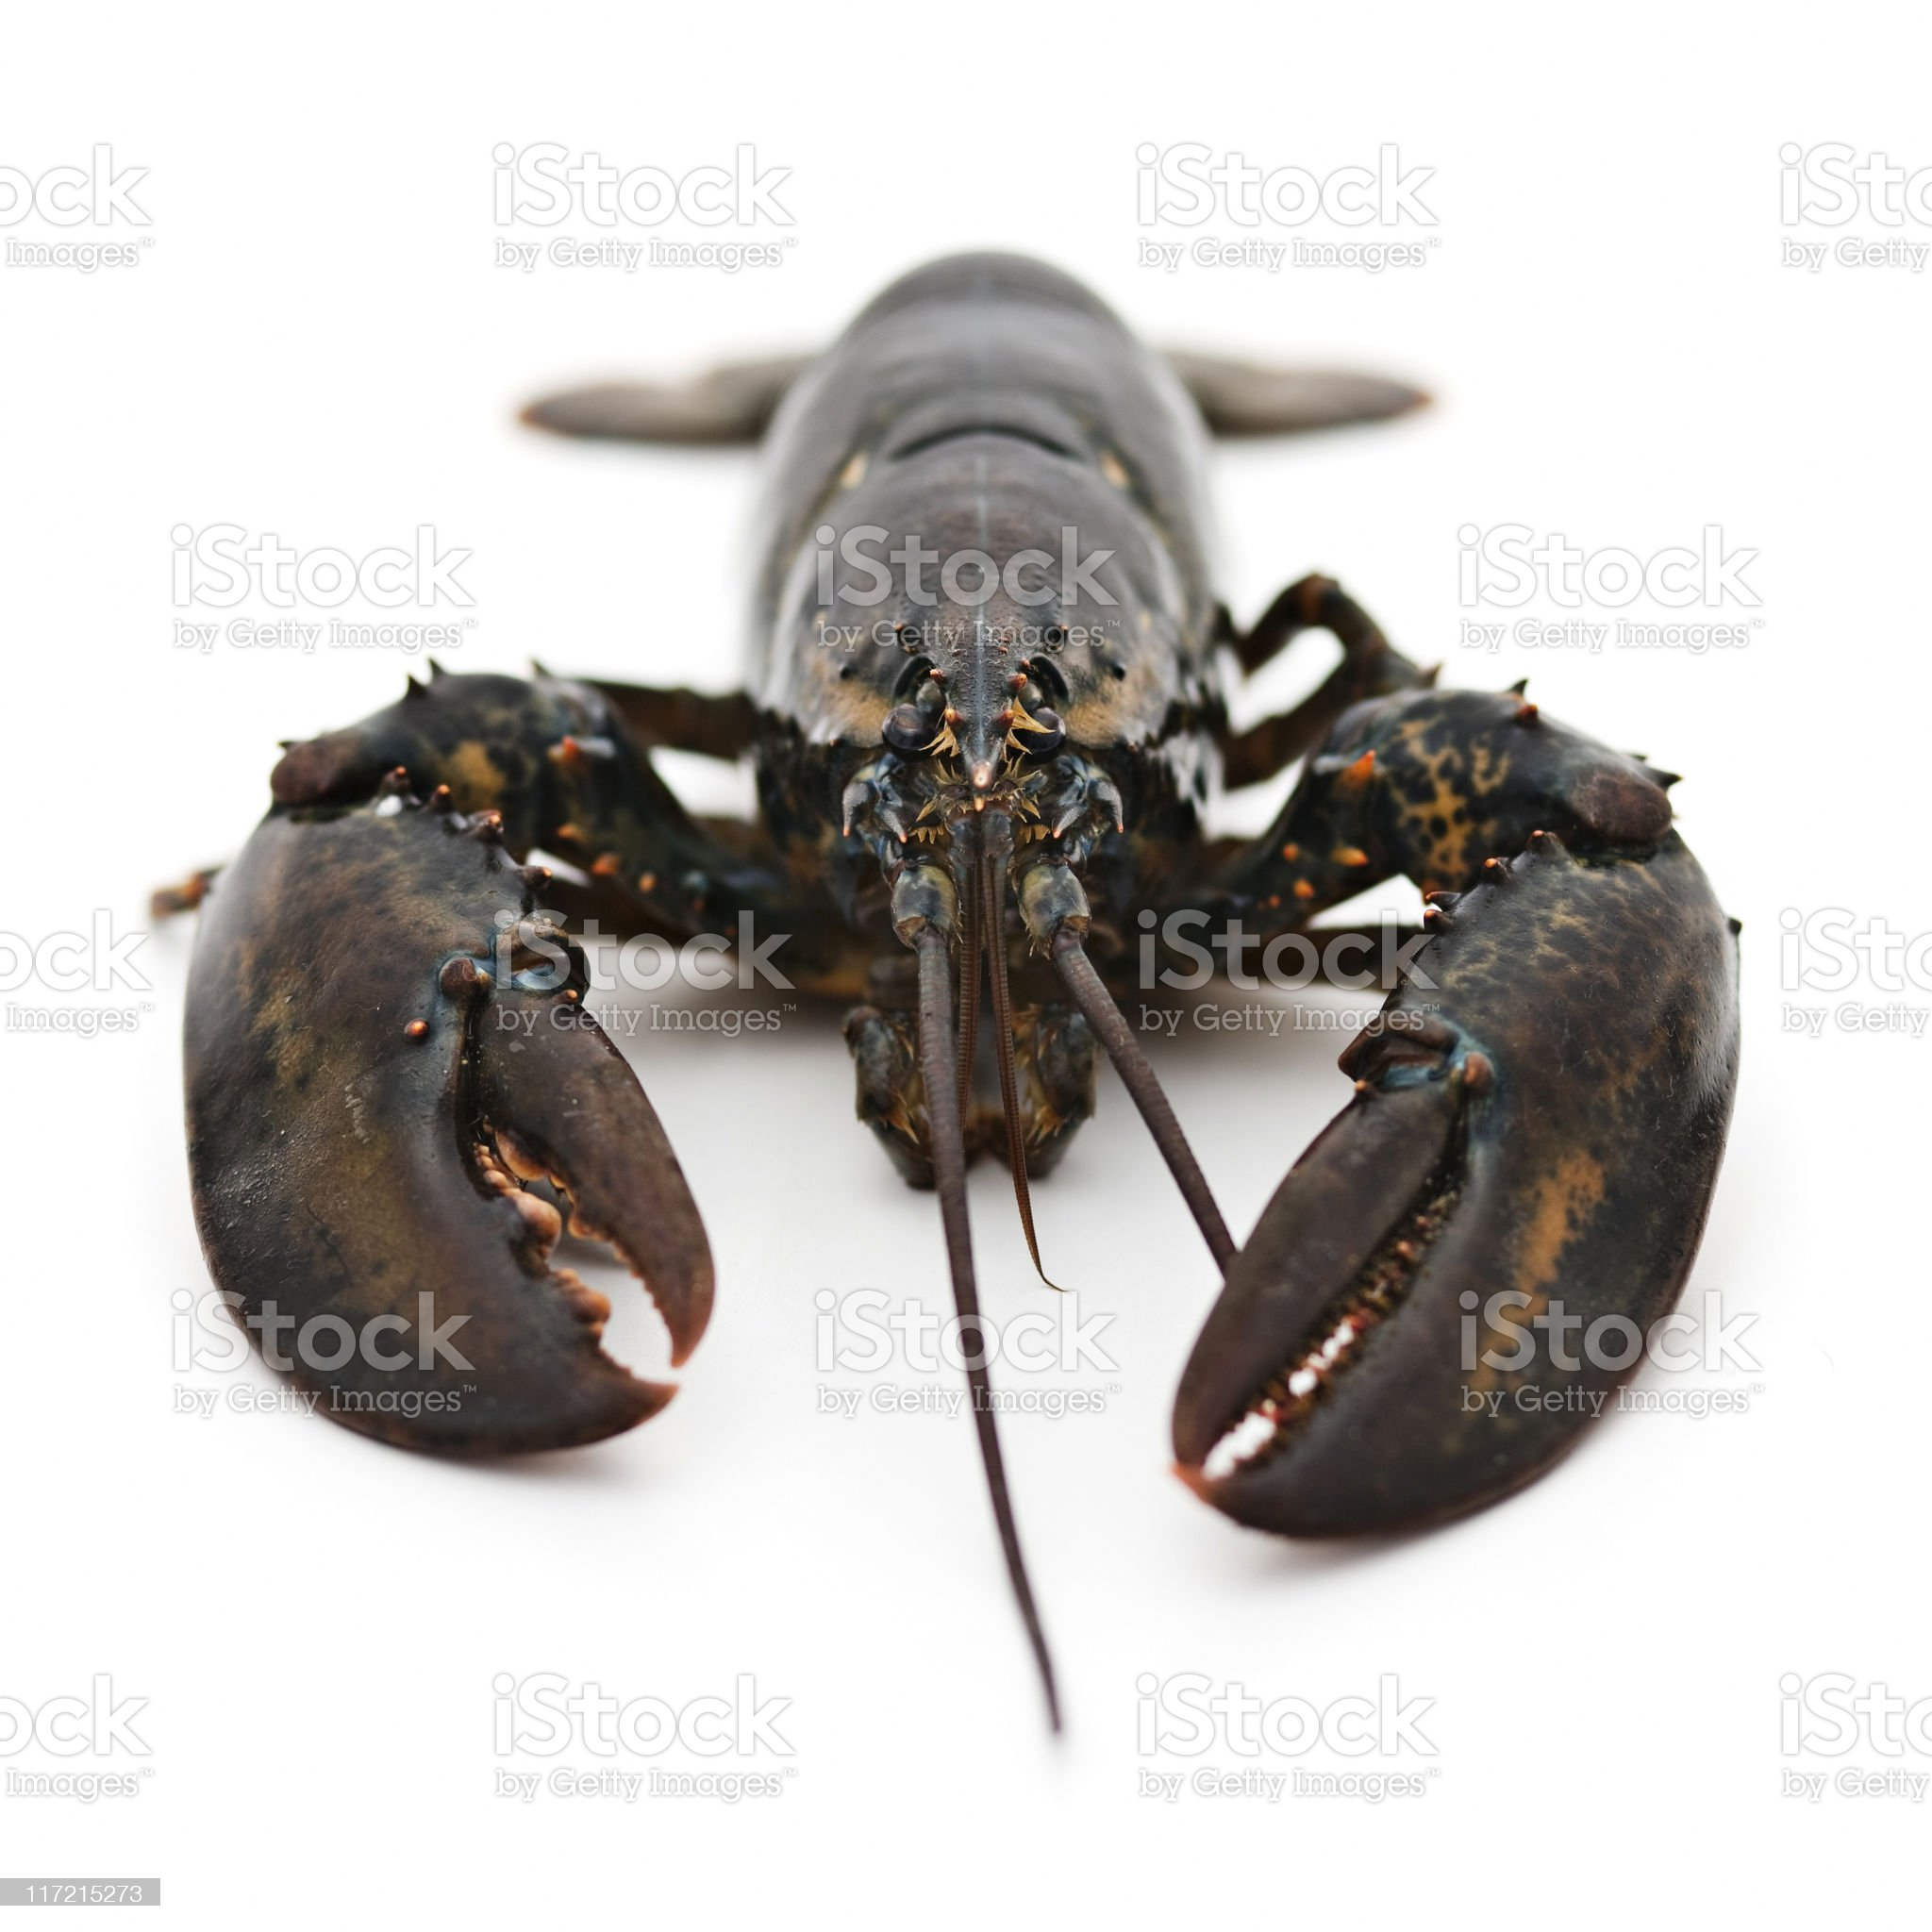 Living lobster royalty-free stock photo